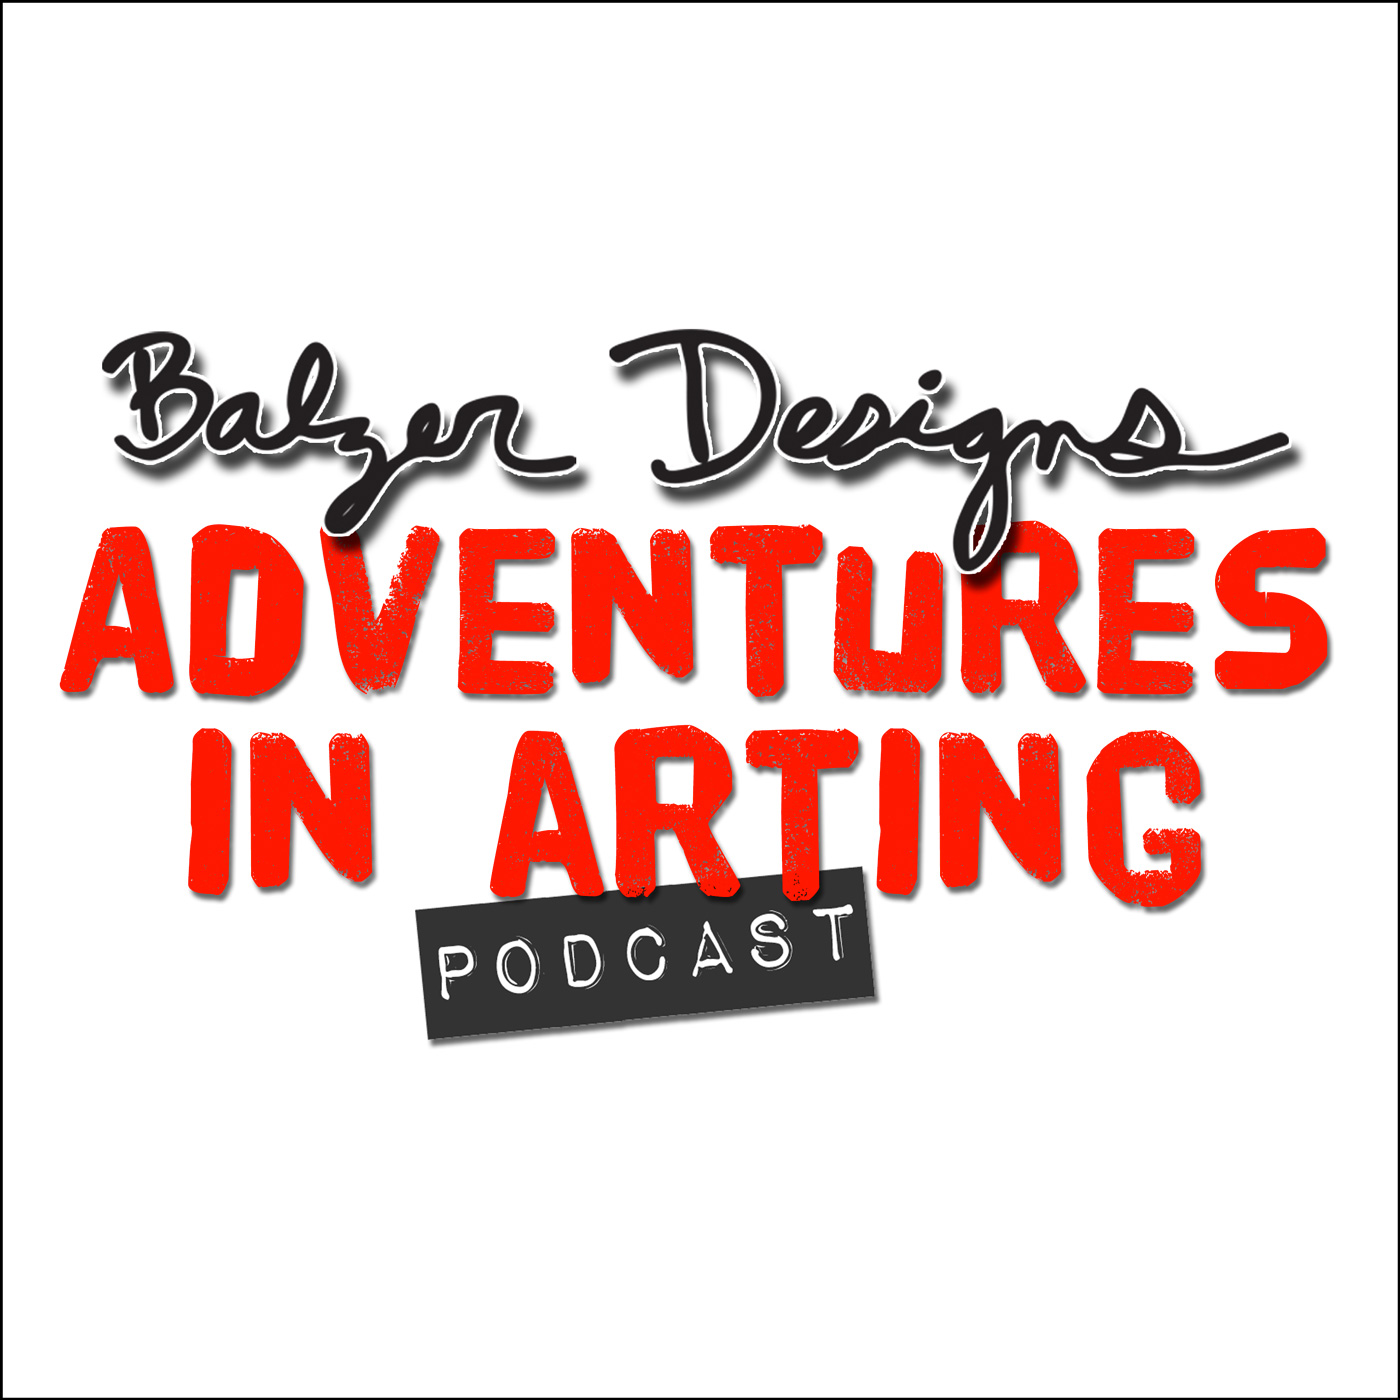 Adventures in Arting Podcast» Podcast